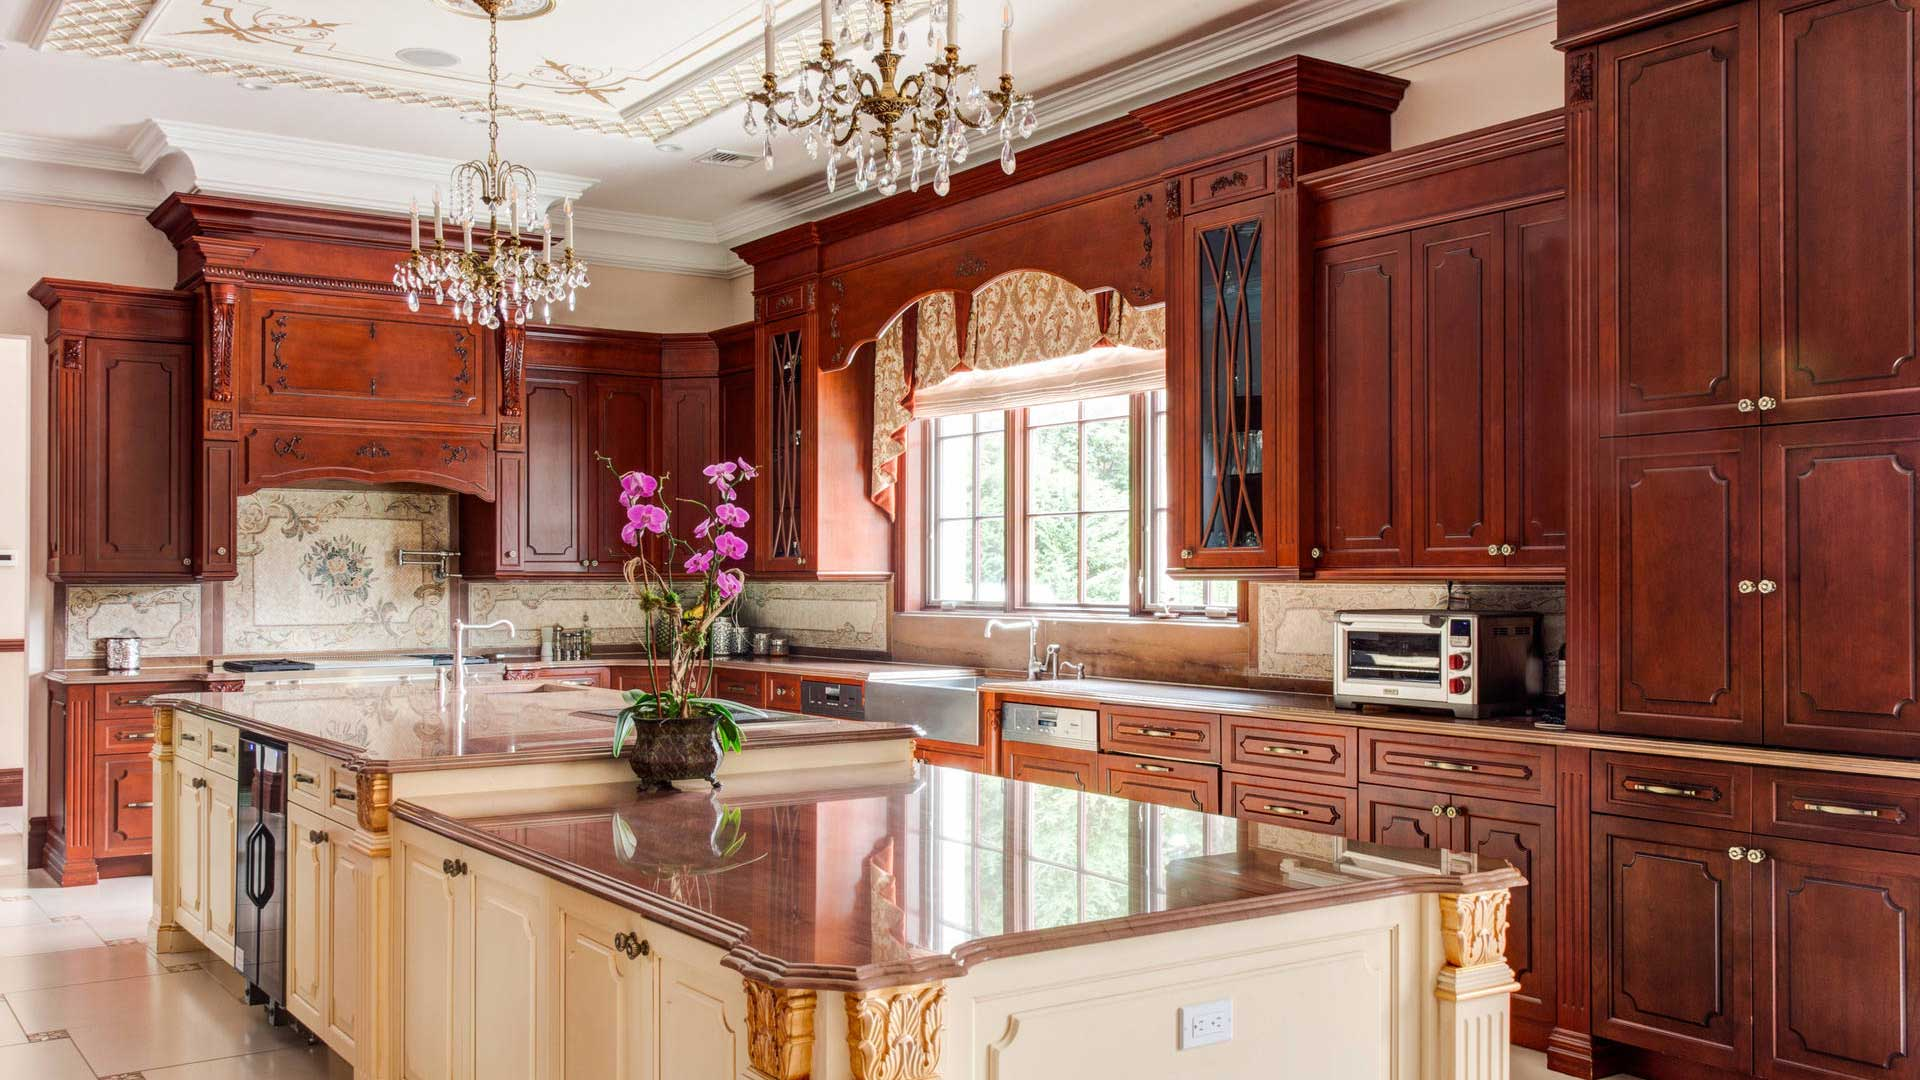 Open concept Victorian design kitchen with ornately-carved wooden center island.